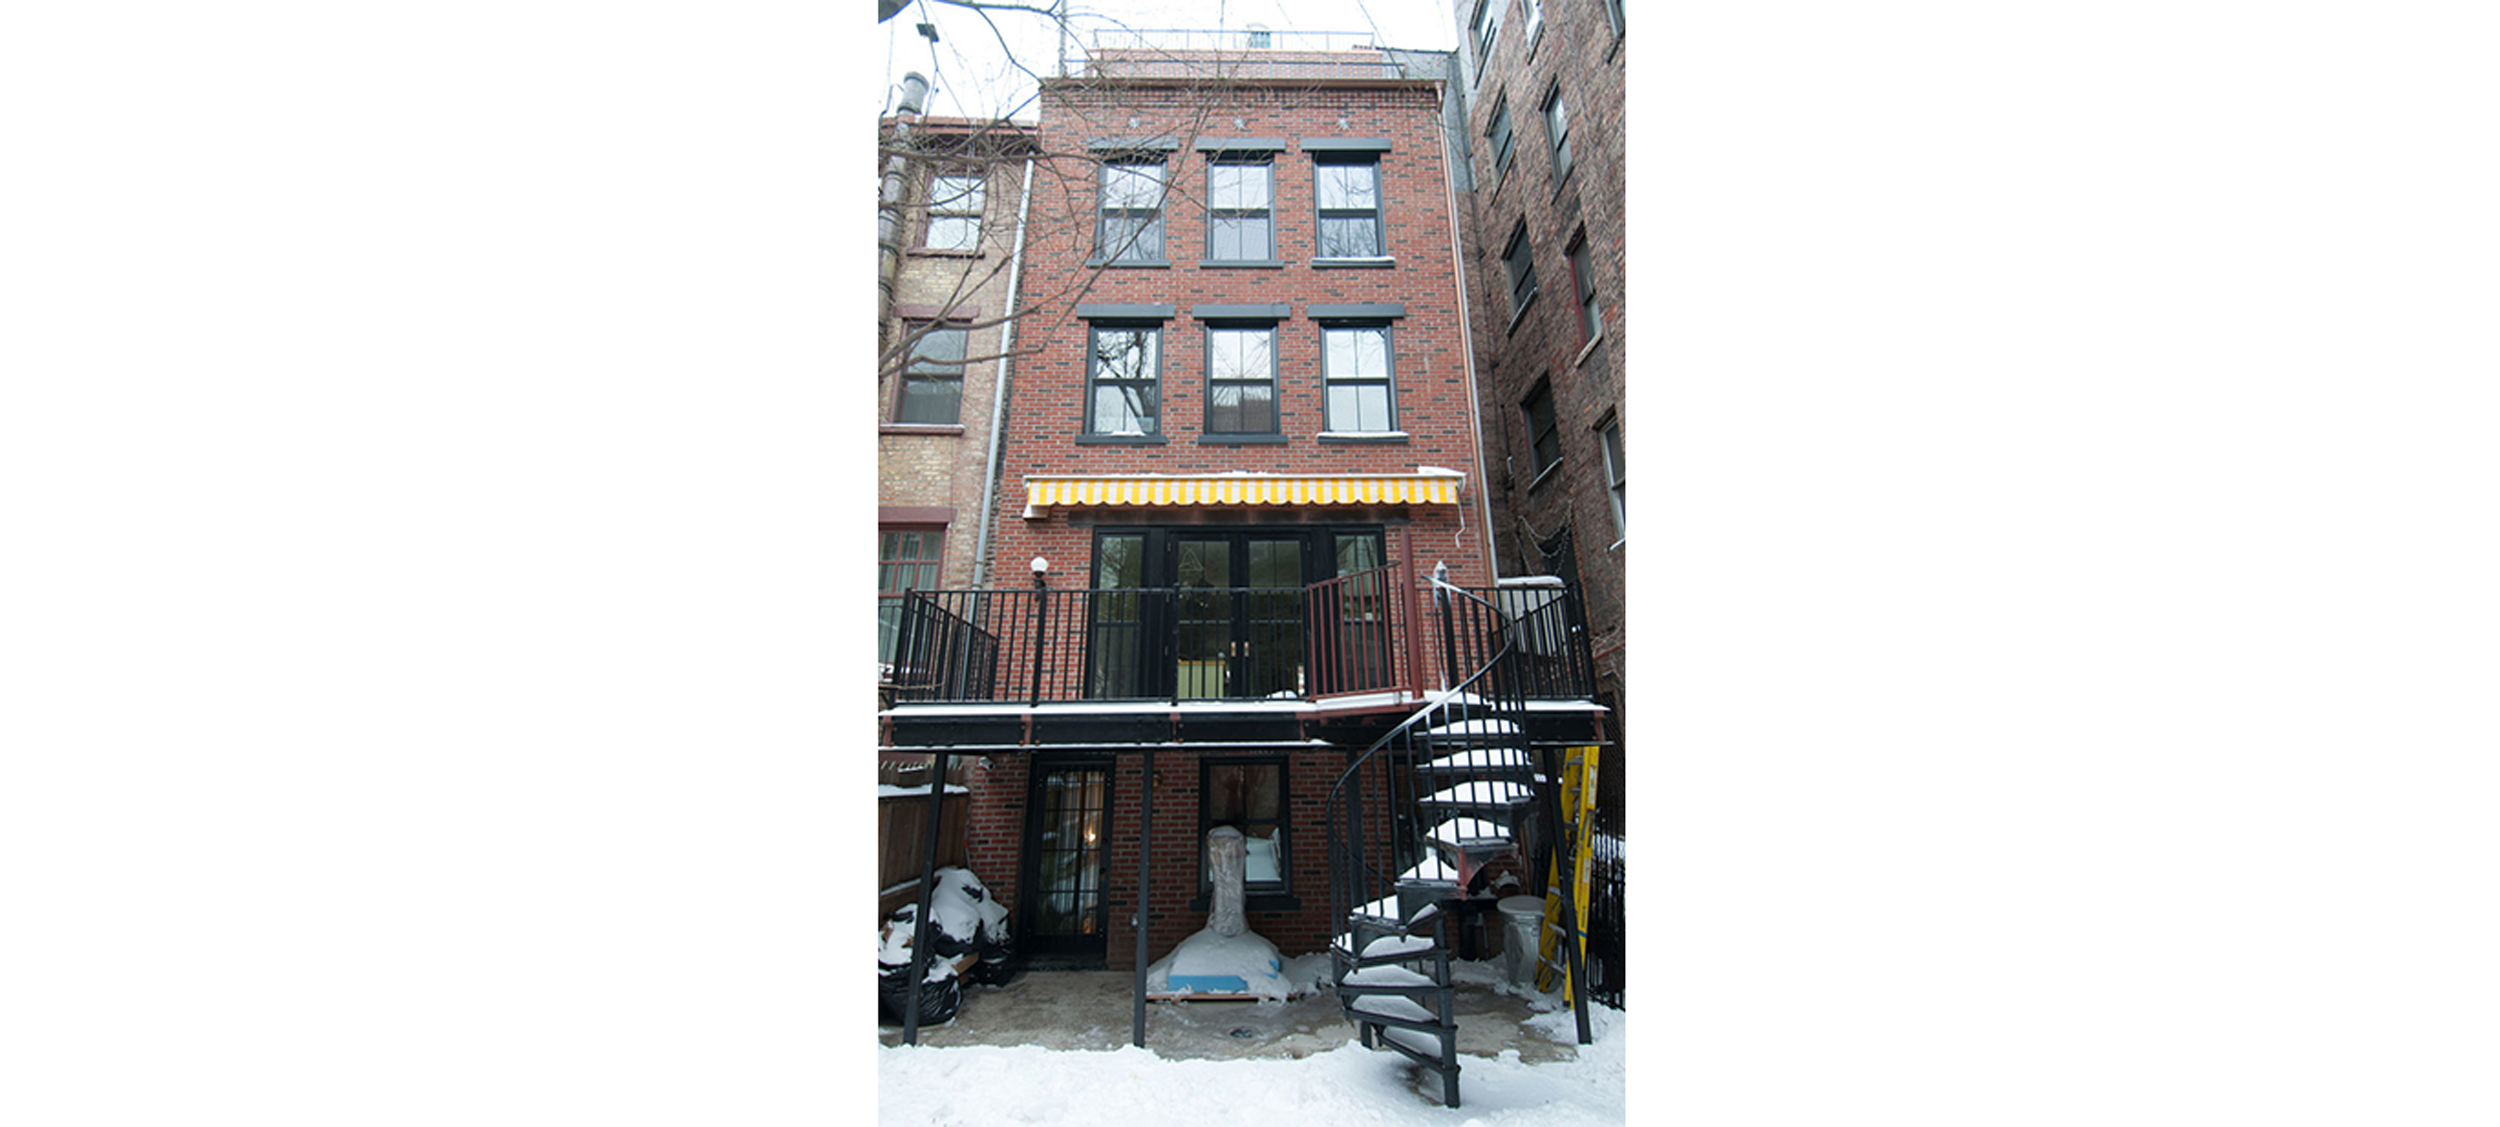 East-Village-David-Bucovy-Architect.png